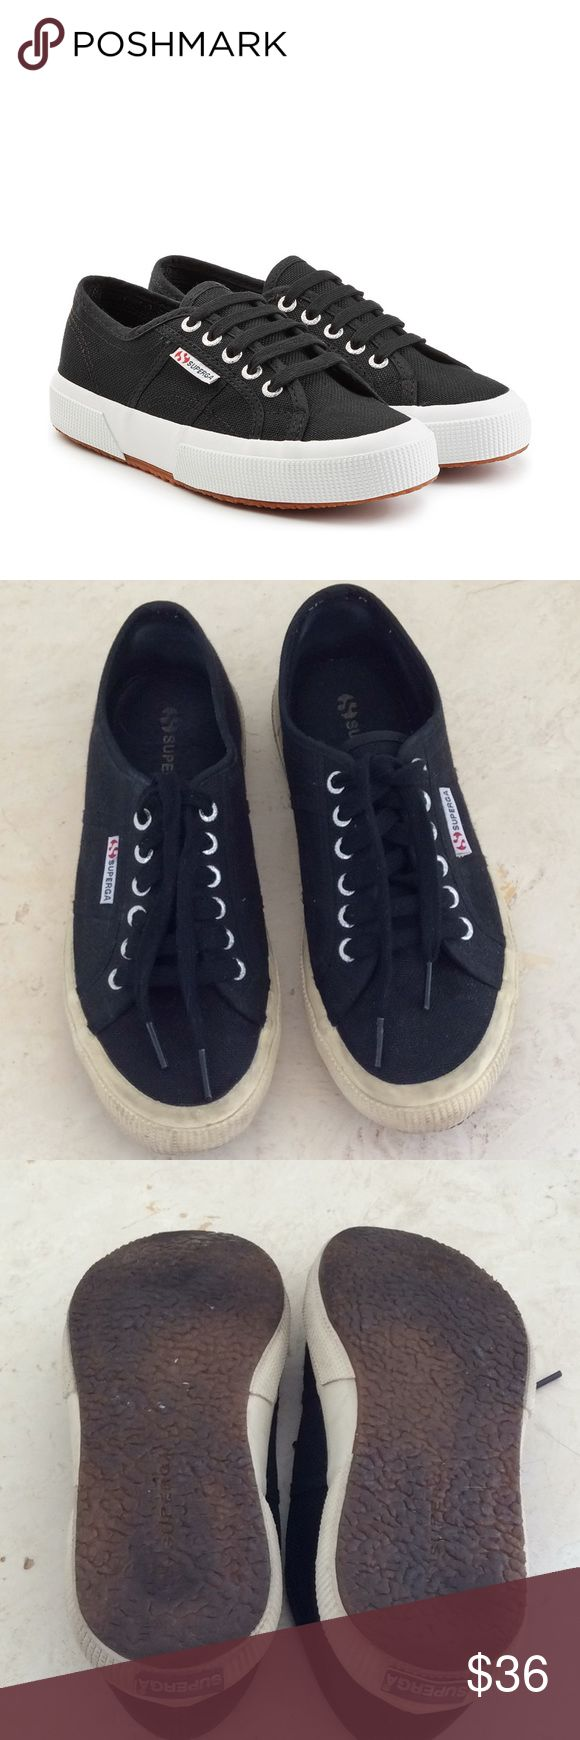 SUPERGA BLACK SNEAKERS🌟 Awesome black supergas in great condition🌟size 39 Superga Shoes Sneakers